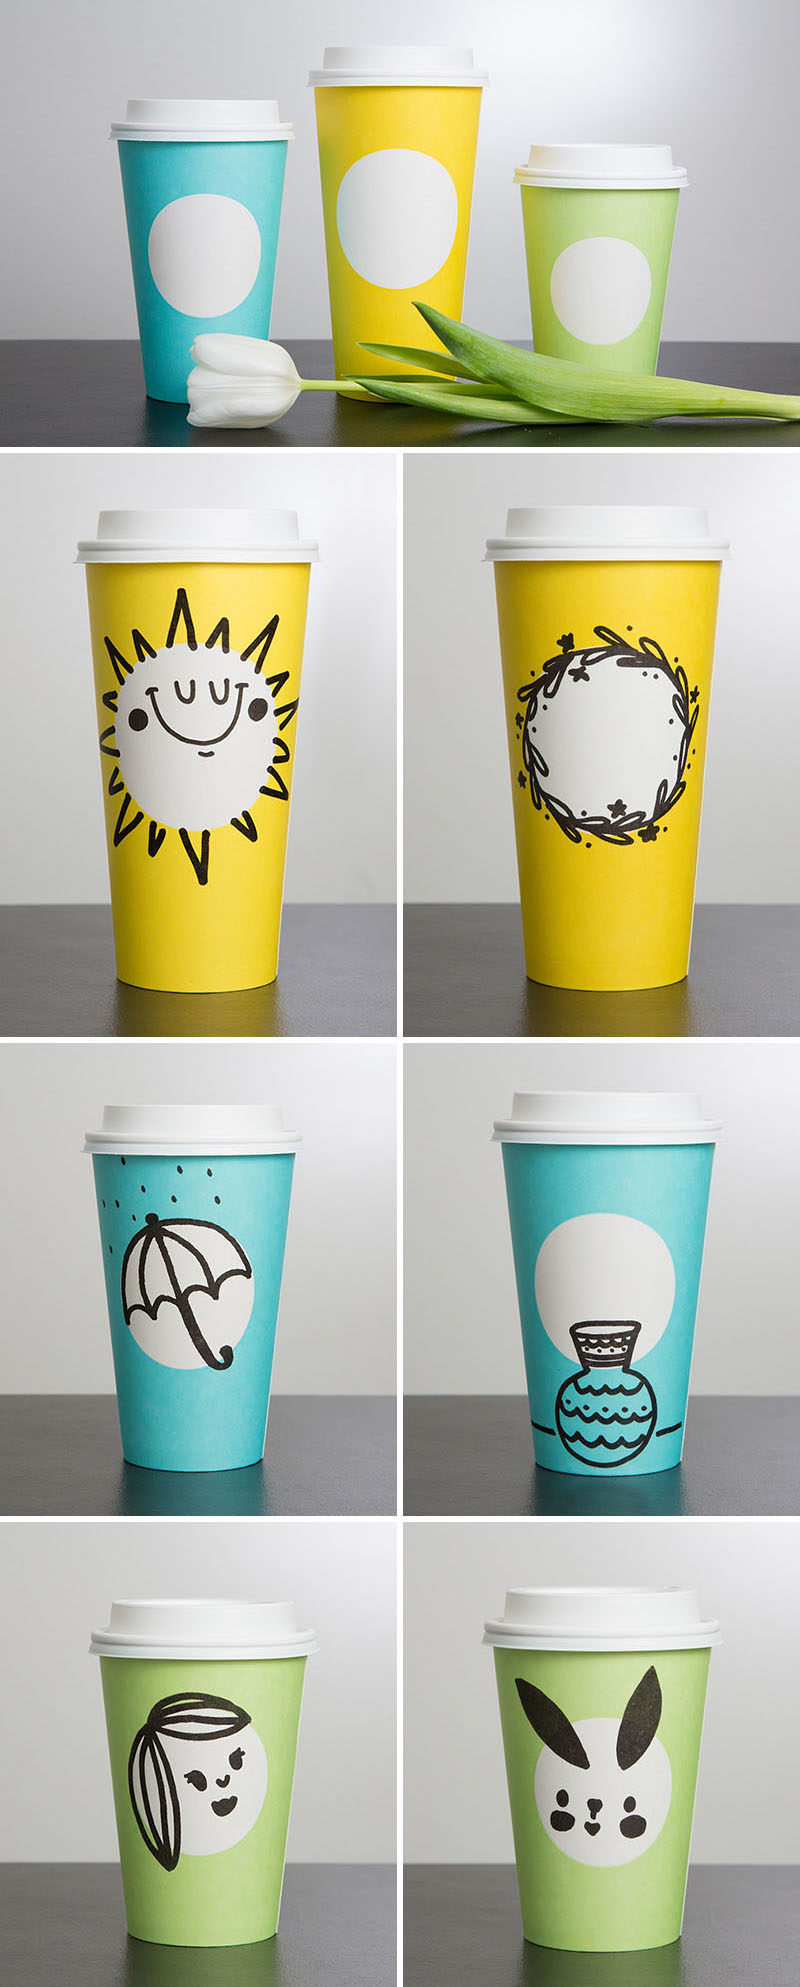 This spring, Starbucks will be unveiling their latest cup designs, a minimalist spring theme cup in pastel colors with a simple white circle so that you can draw your own design. Others will be the same new design but will come with hand-drawn designs on them already.